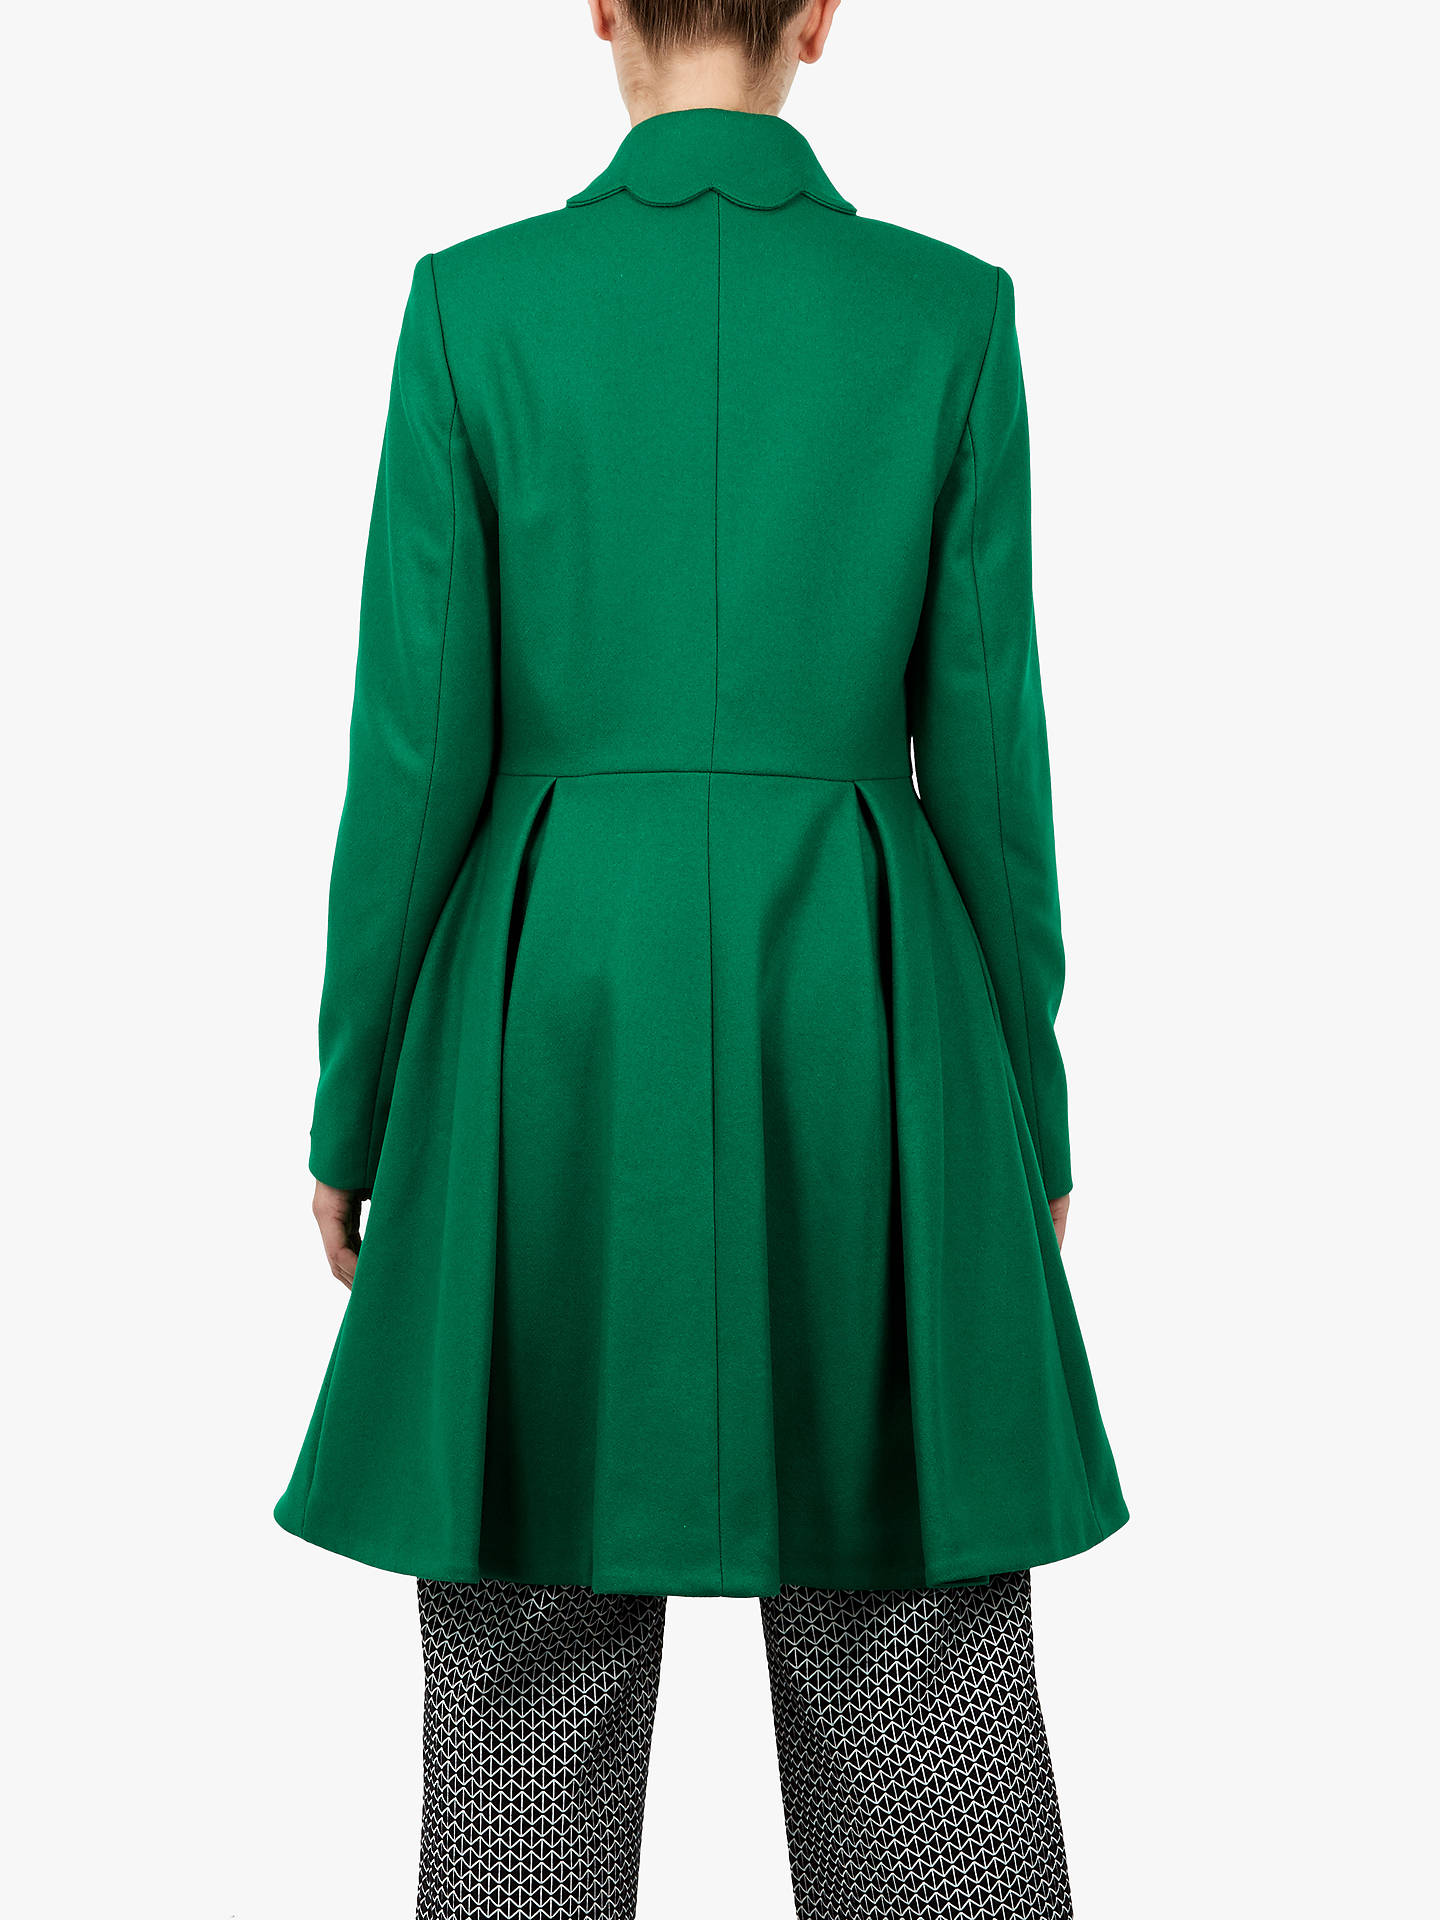 BuyTed Baker Blarnch Wool Blend Scallop Trim Swing Coat, Green, 4 Online at johnlewis.com